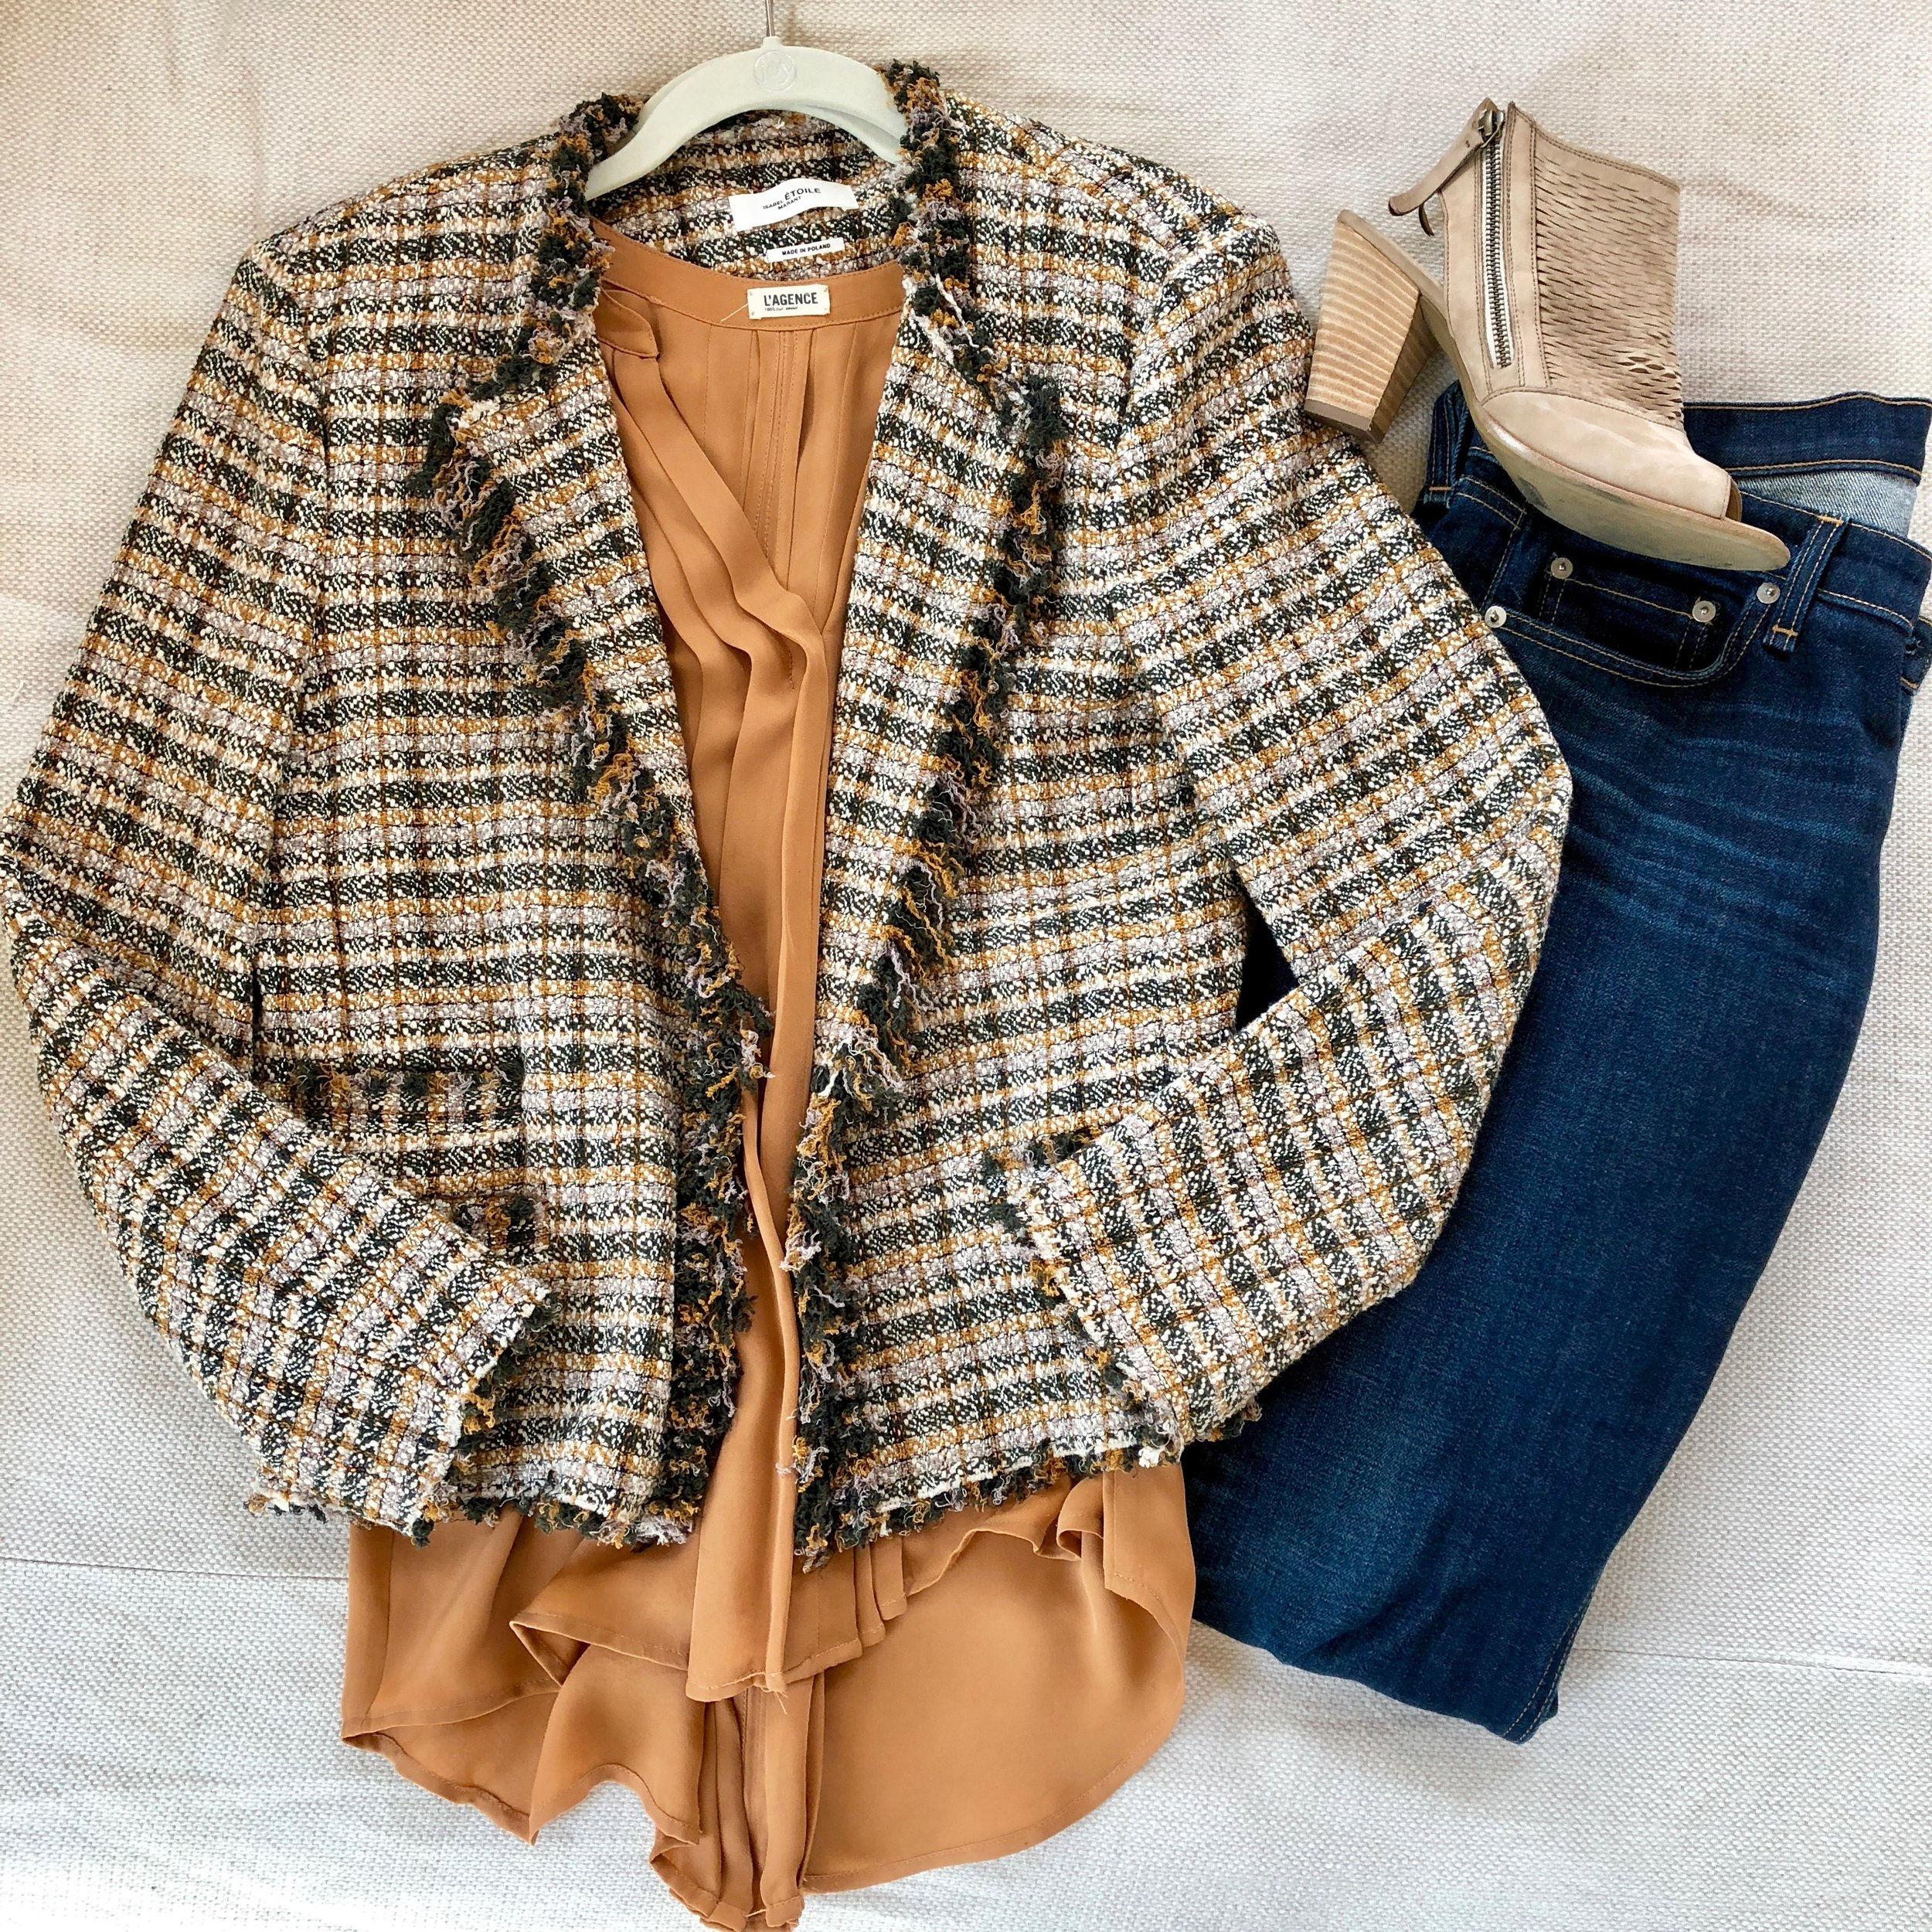 tweed jacket and jeans.jpg